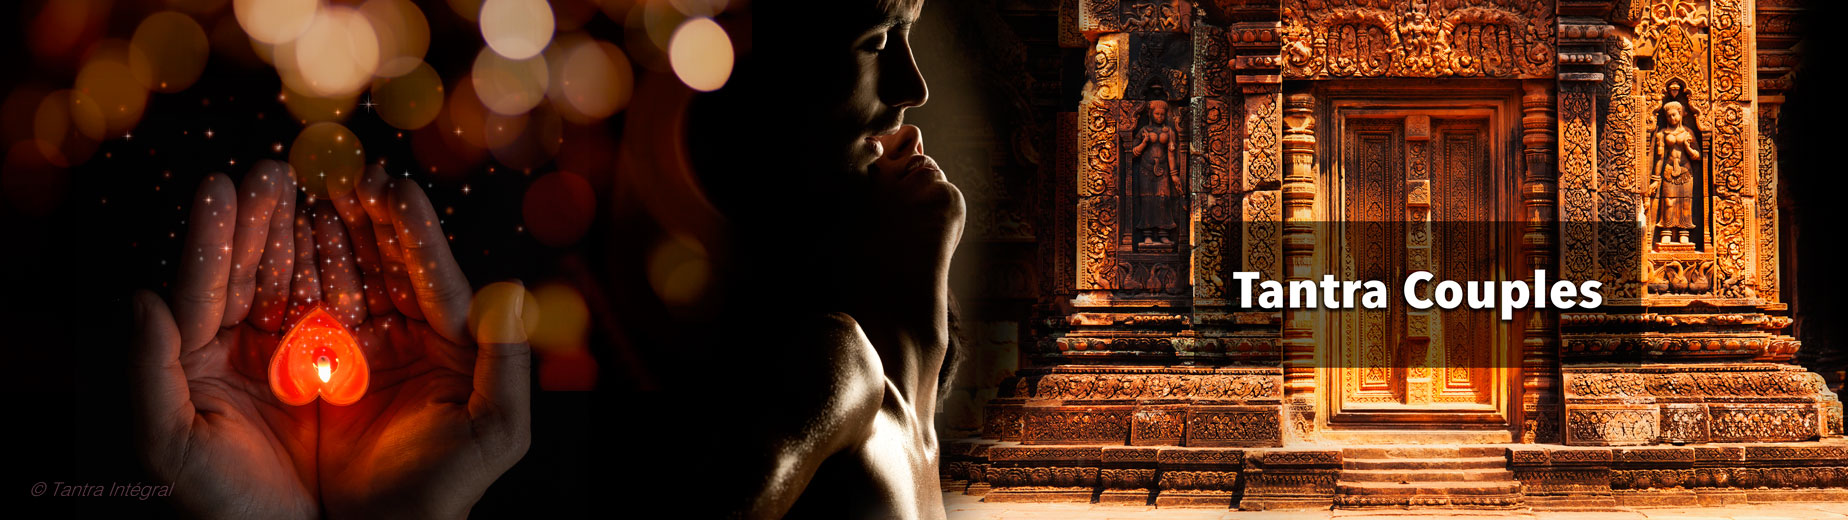 Pano-Stage-Tantra-Couples1